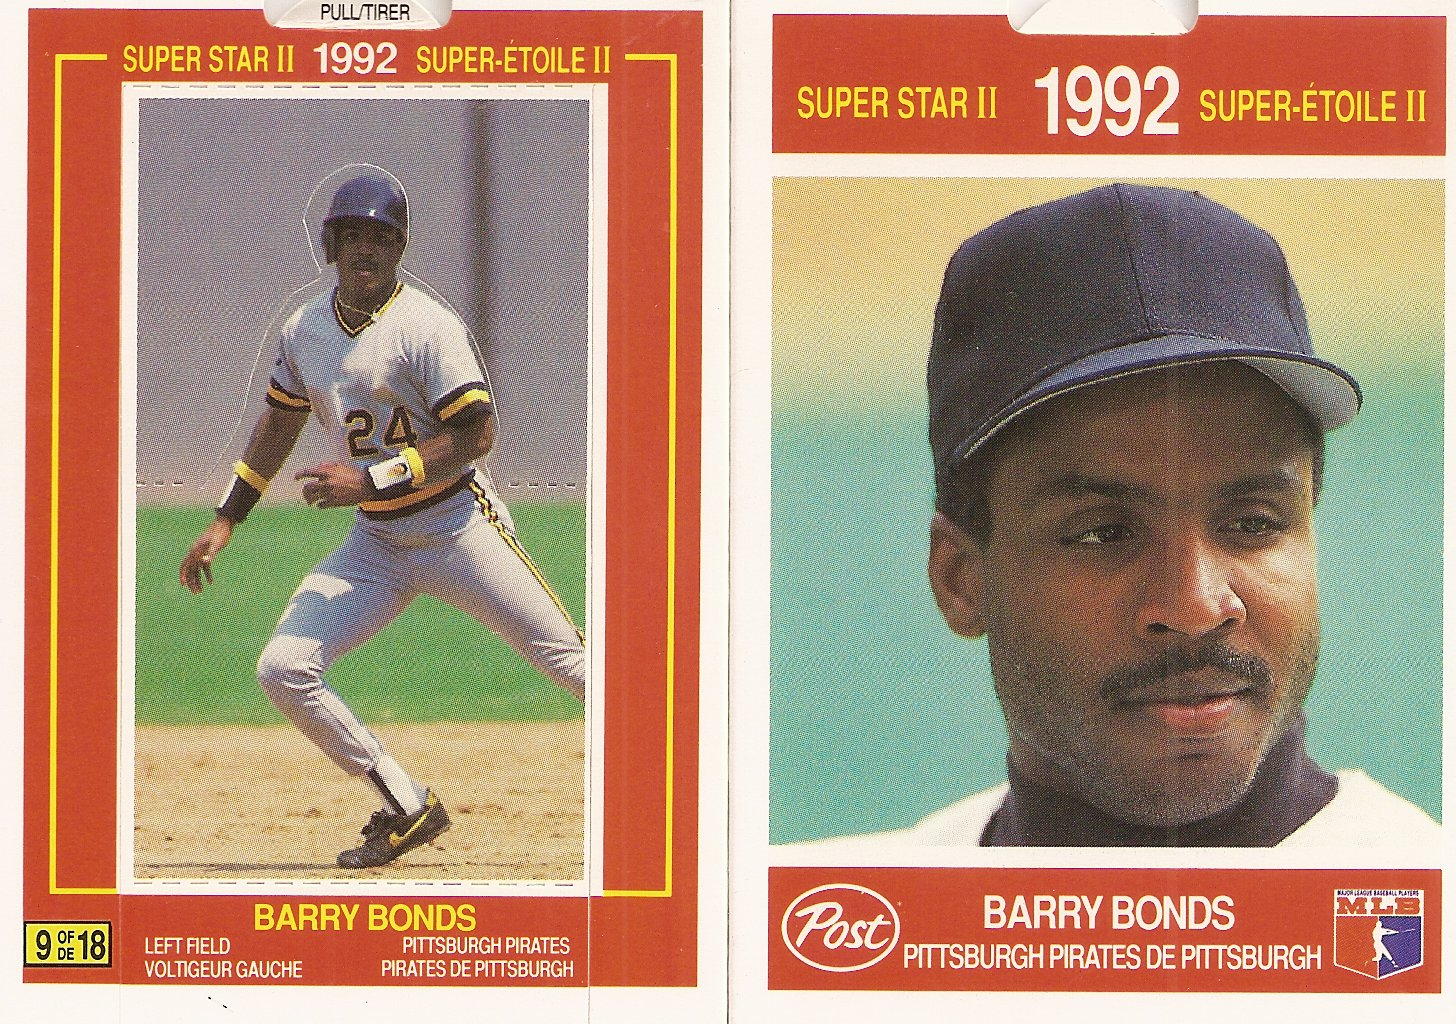 Barry Bonds Price List Supercollector Catalog